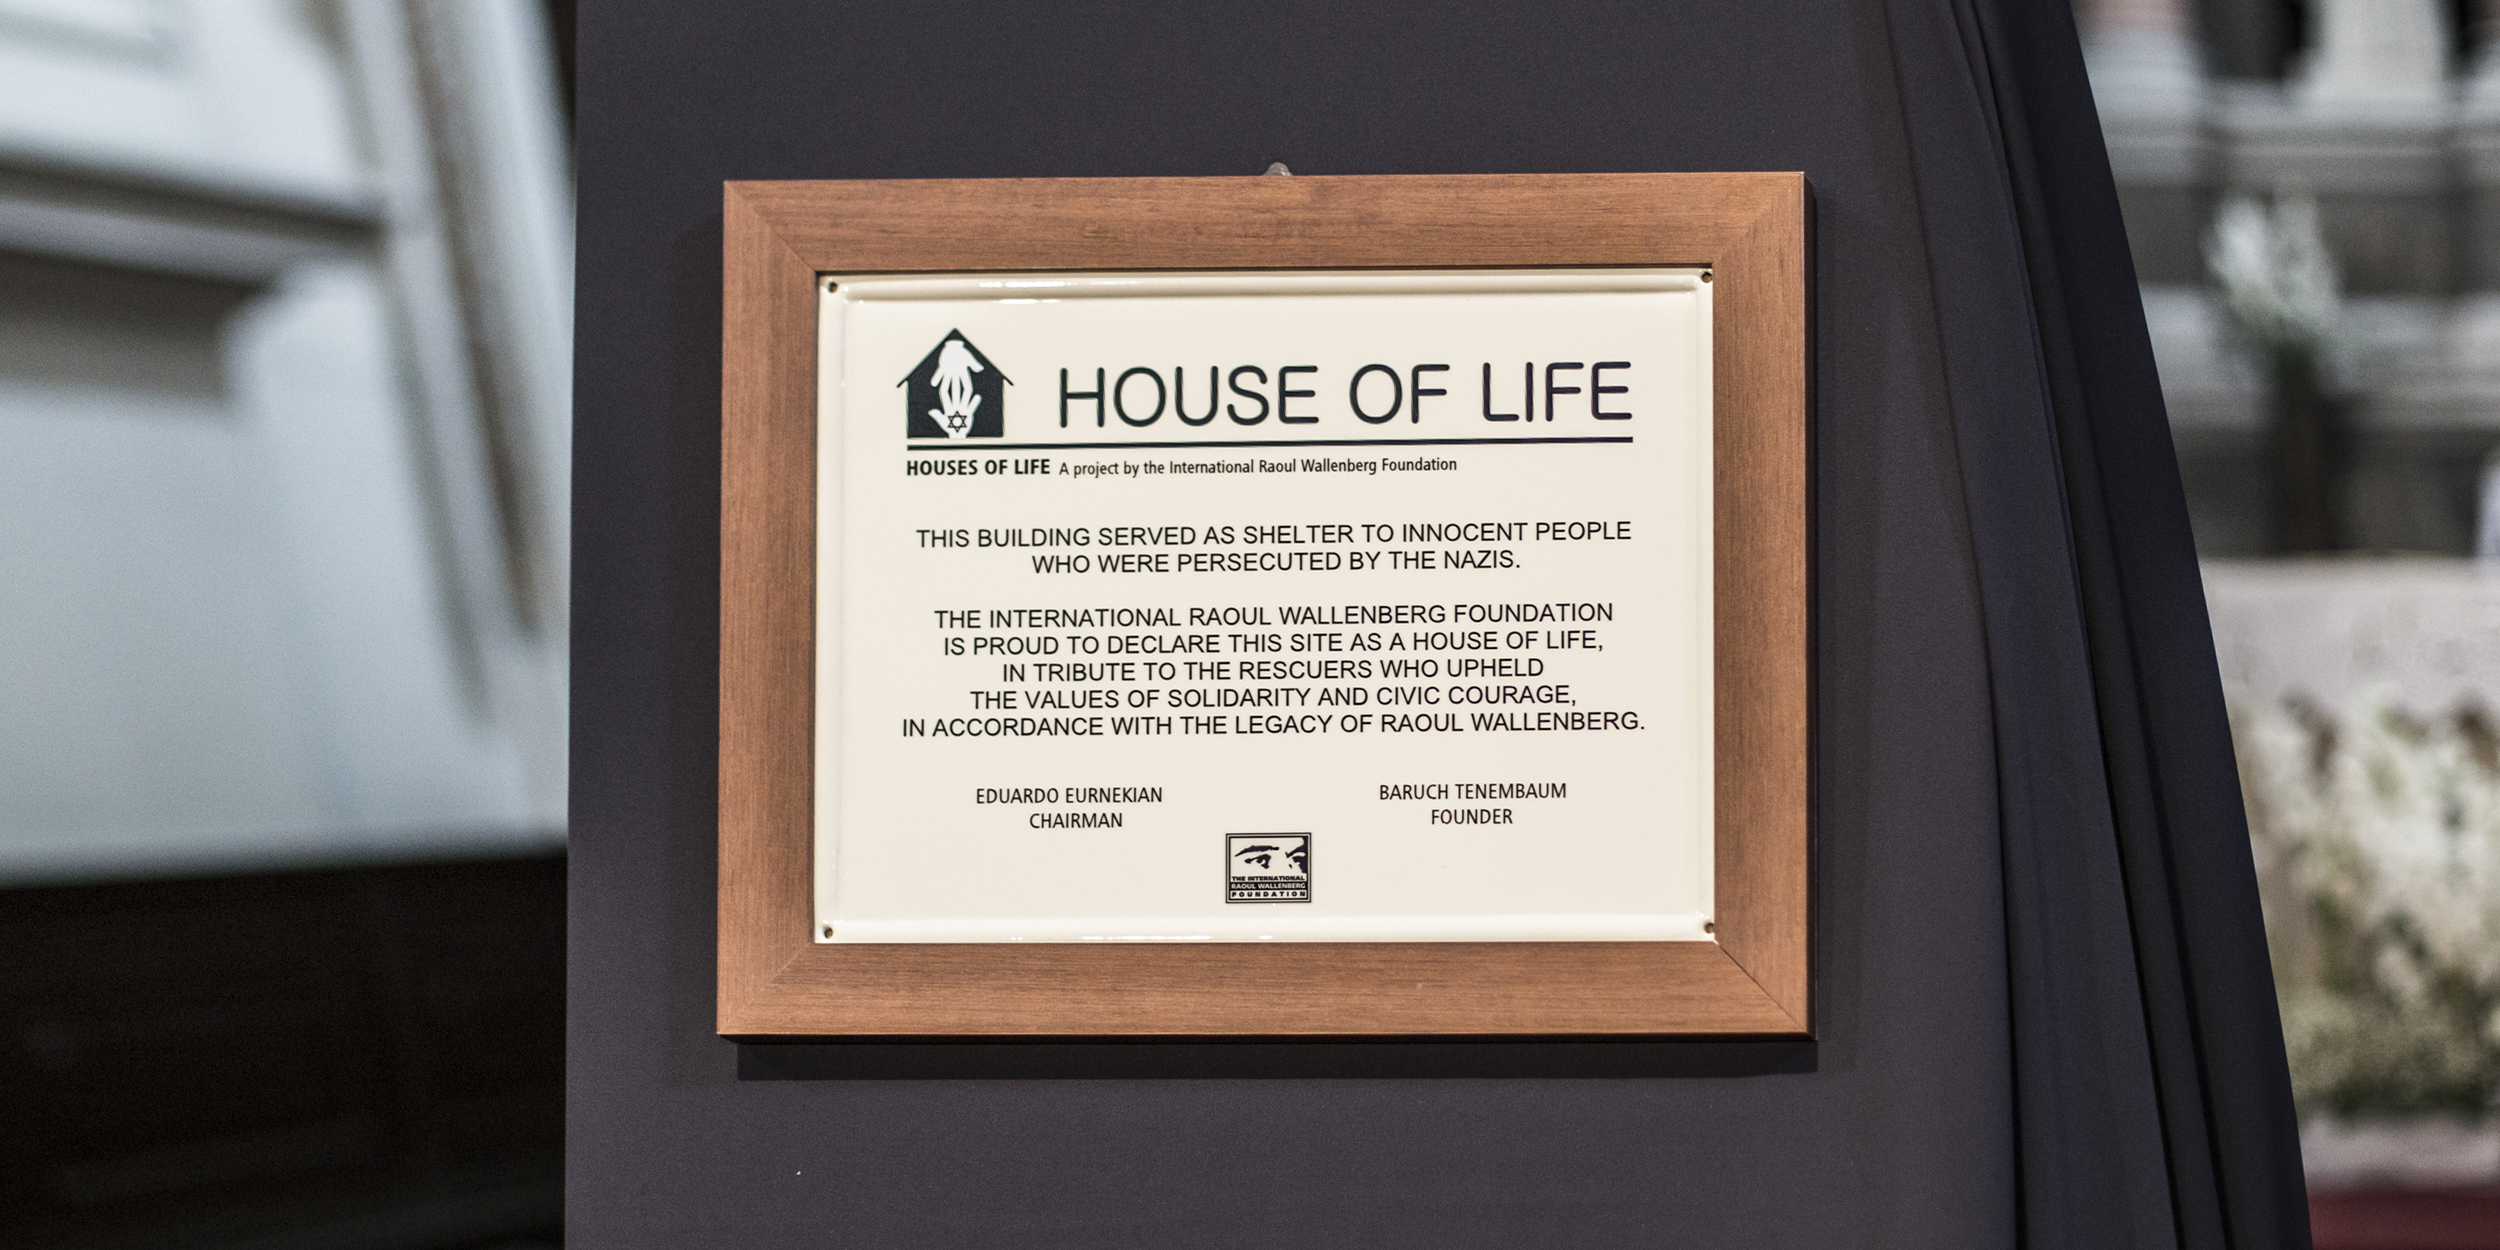 HOUSE OF LIFE WARSAW